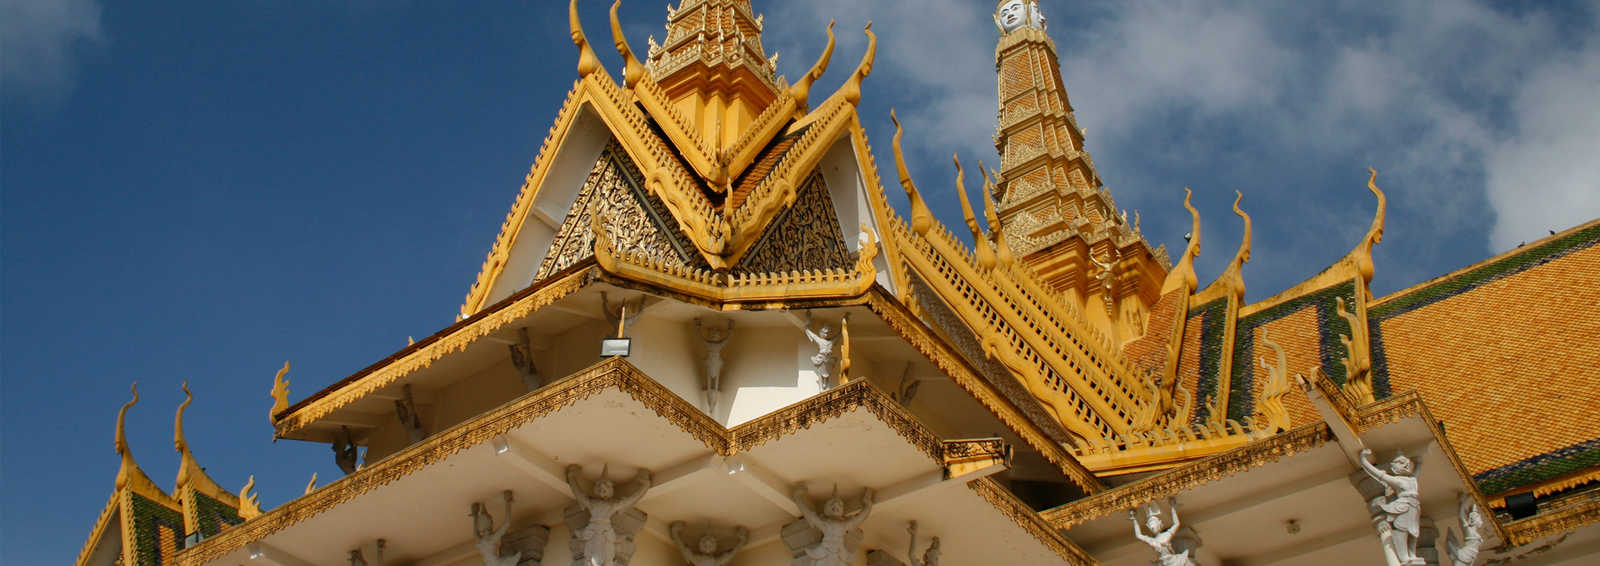 The Royal Palace and Temples, Phnom Penh, Cambodia